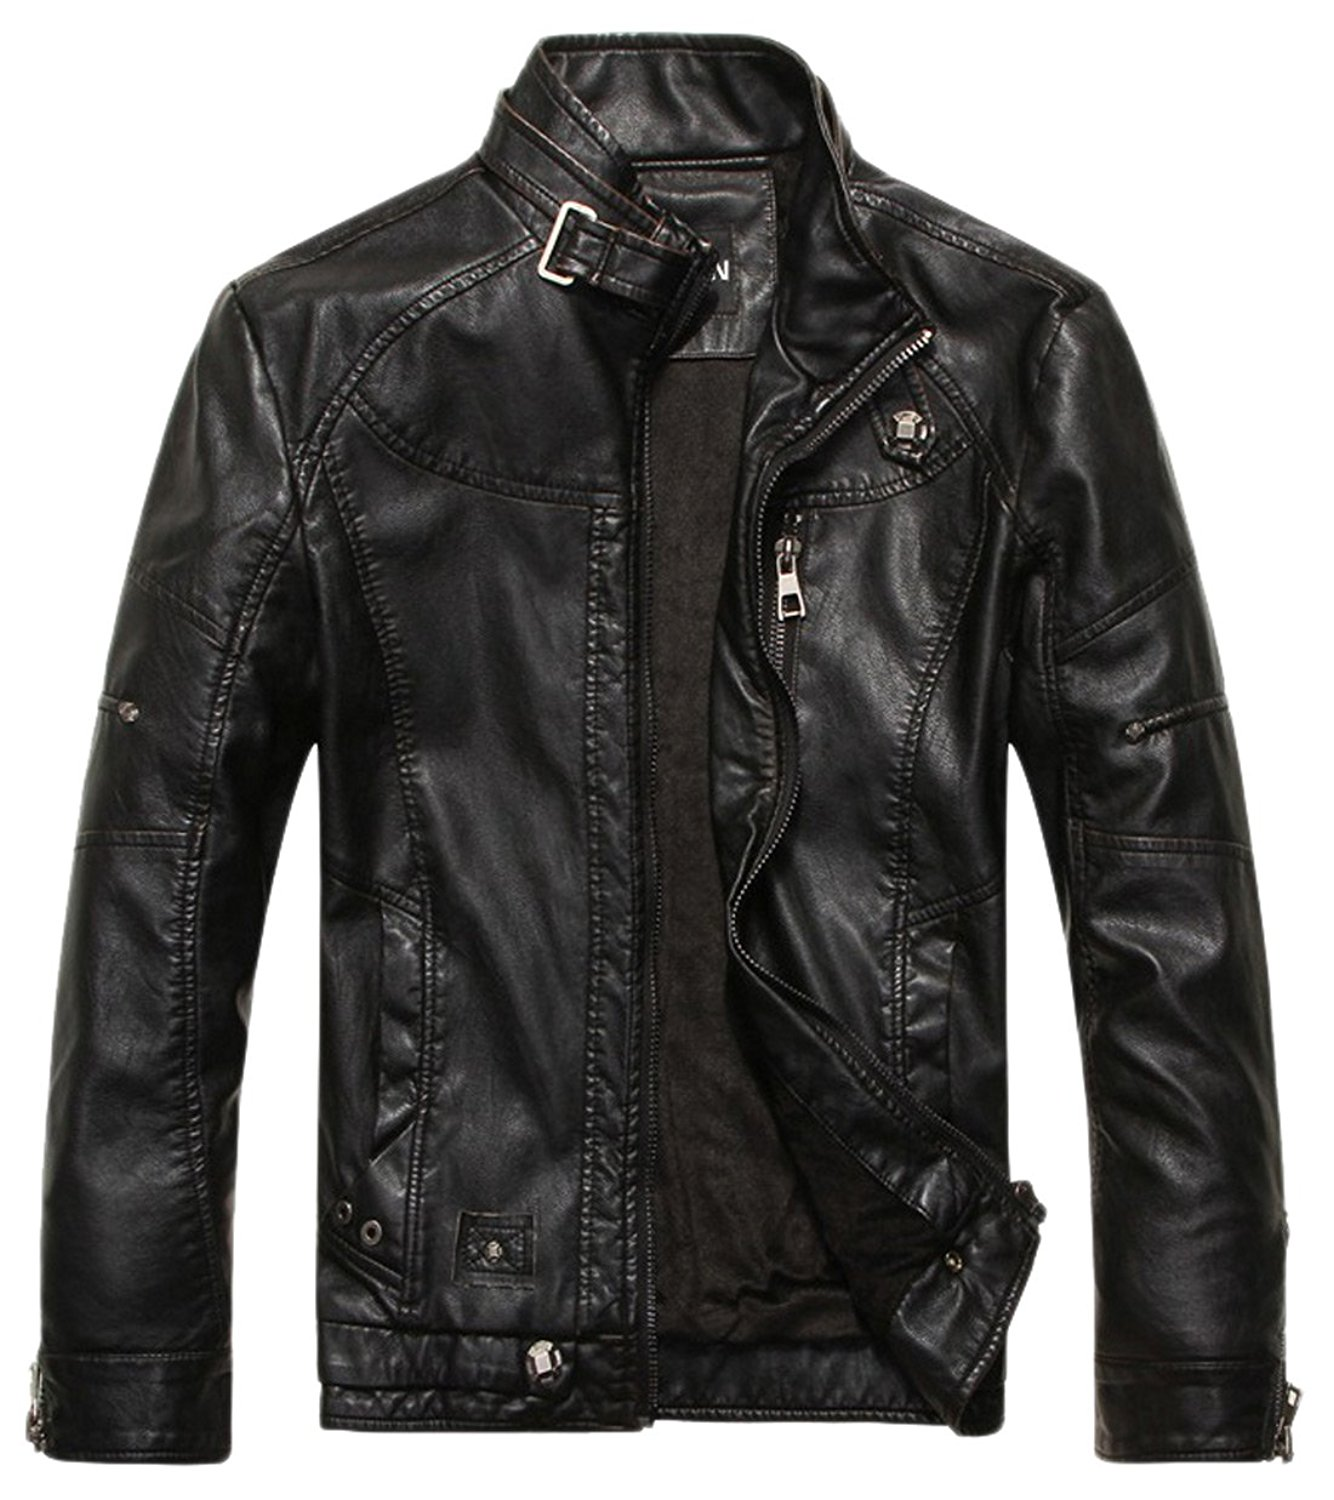 Tips useful to take care of Leather Jackets